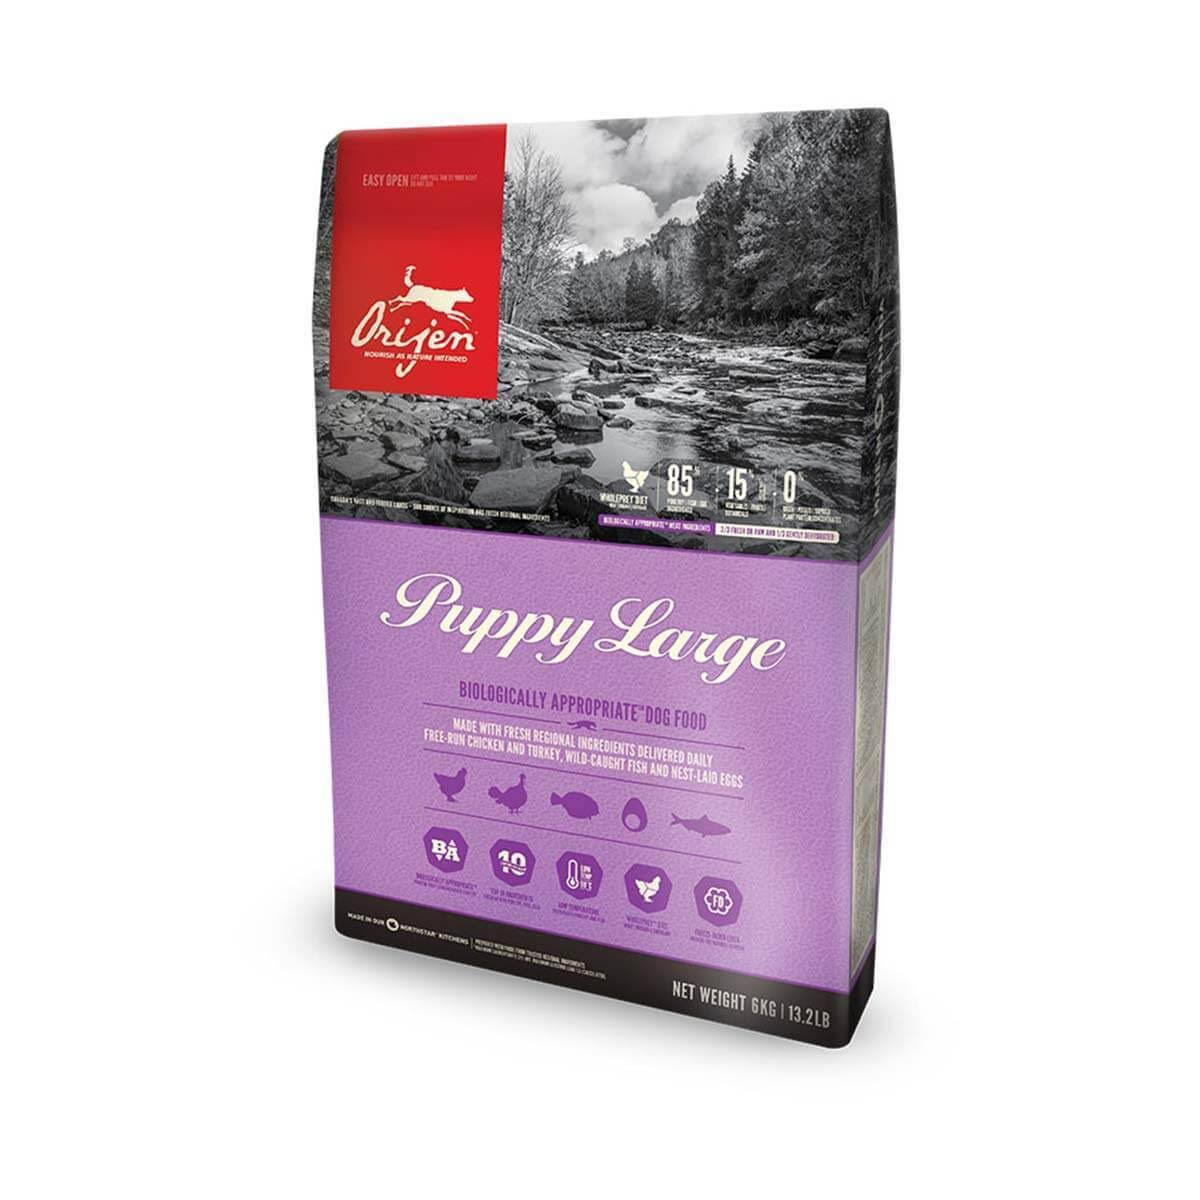 Orijen Puppy Large Dog Food - 6kg